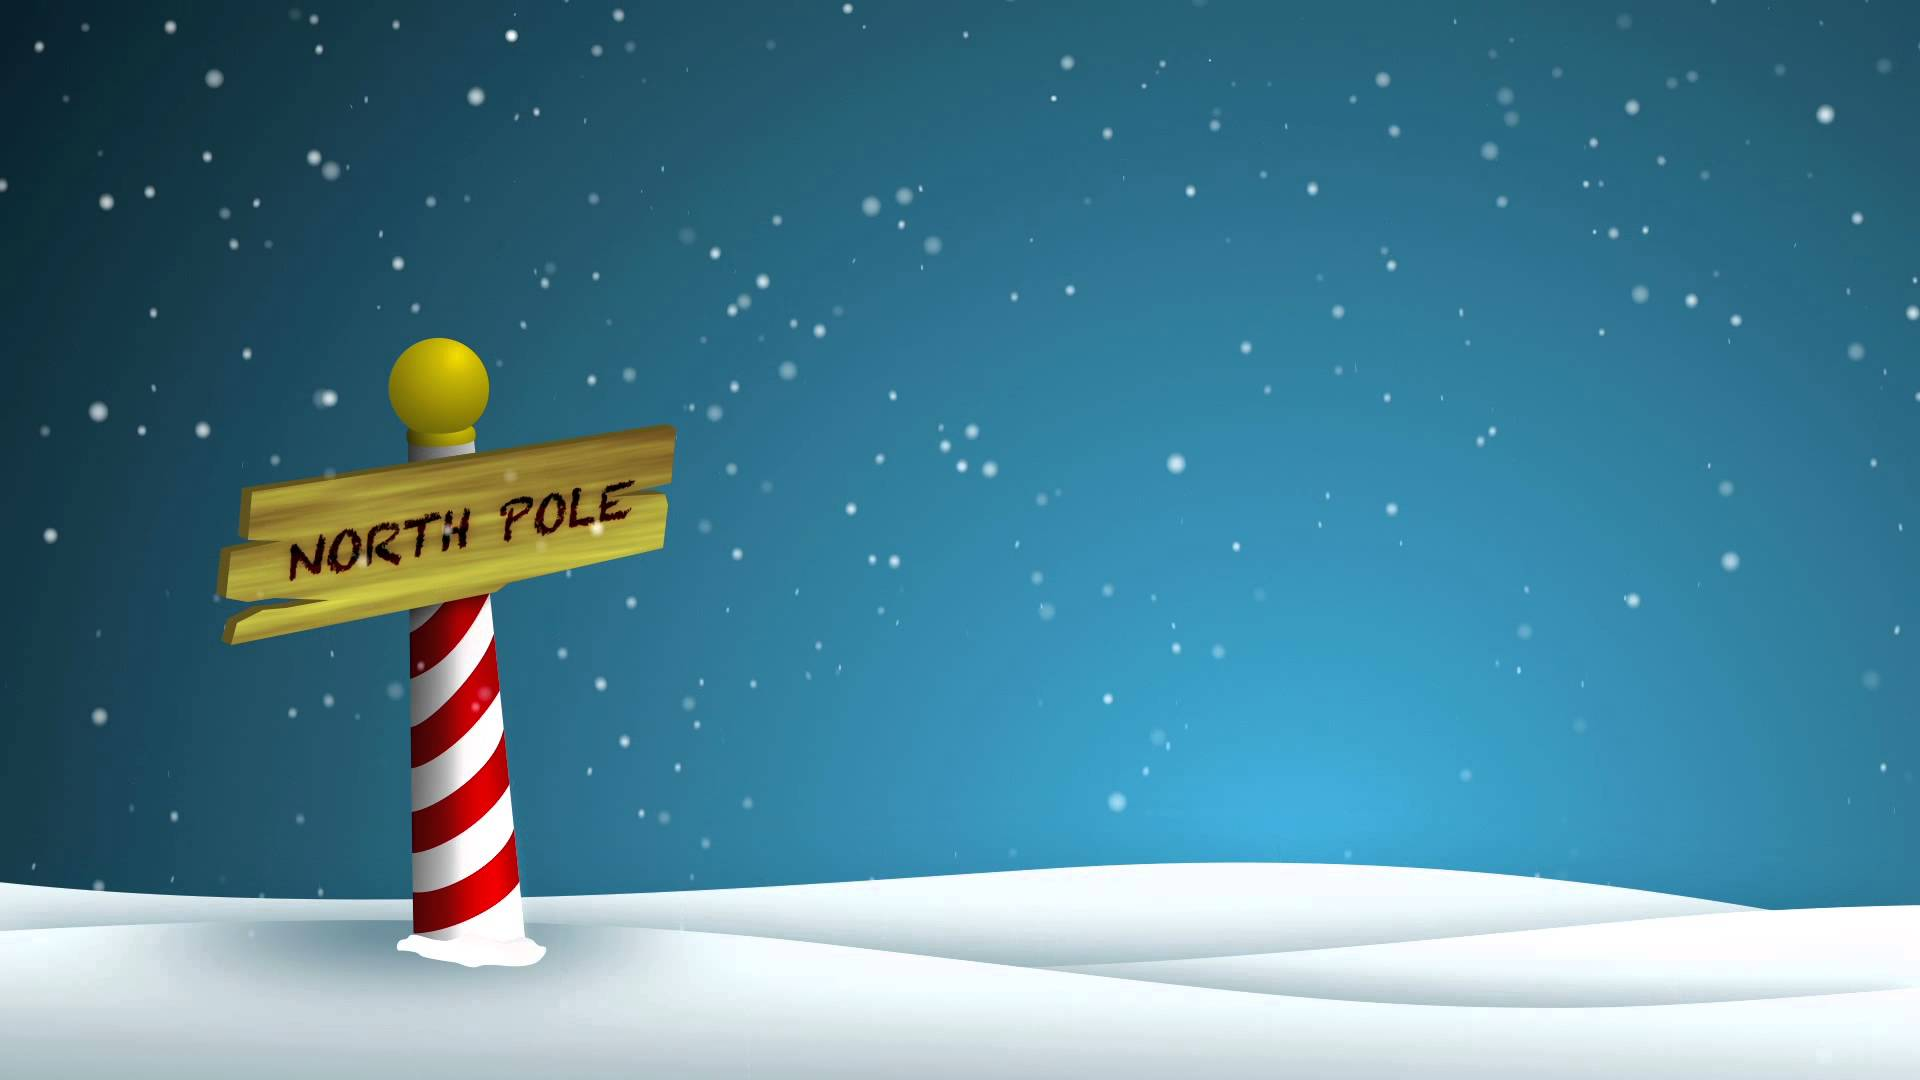 North Pole Hits Melting Point In Christmas